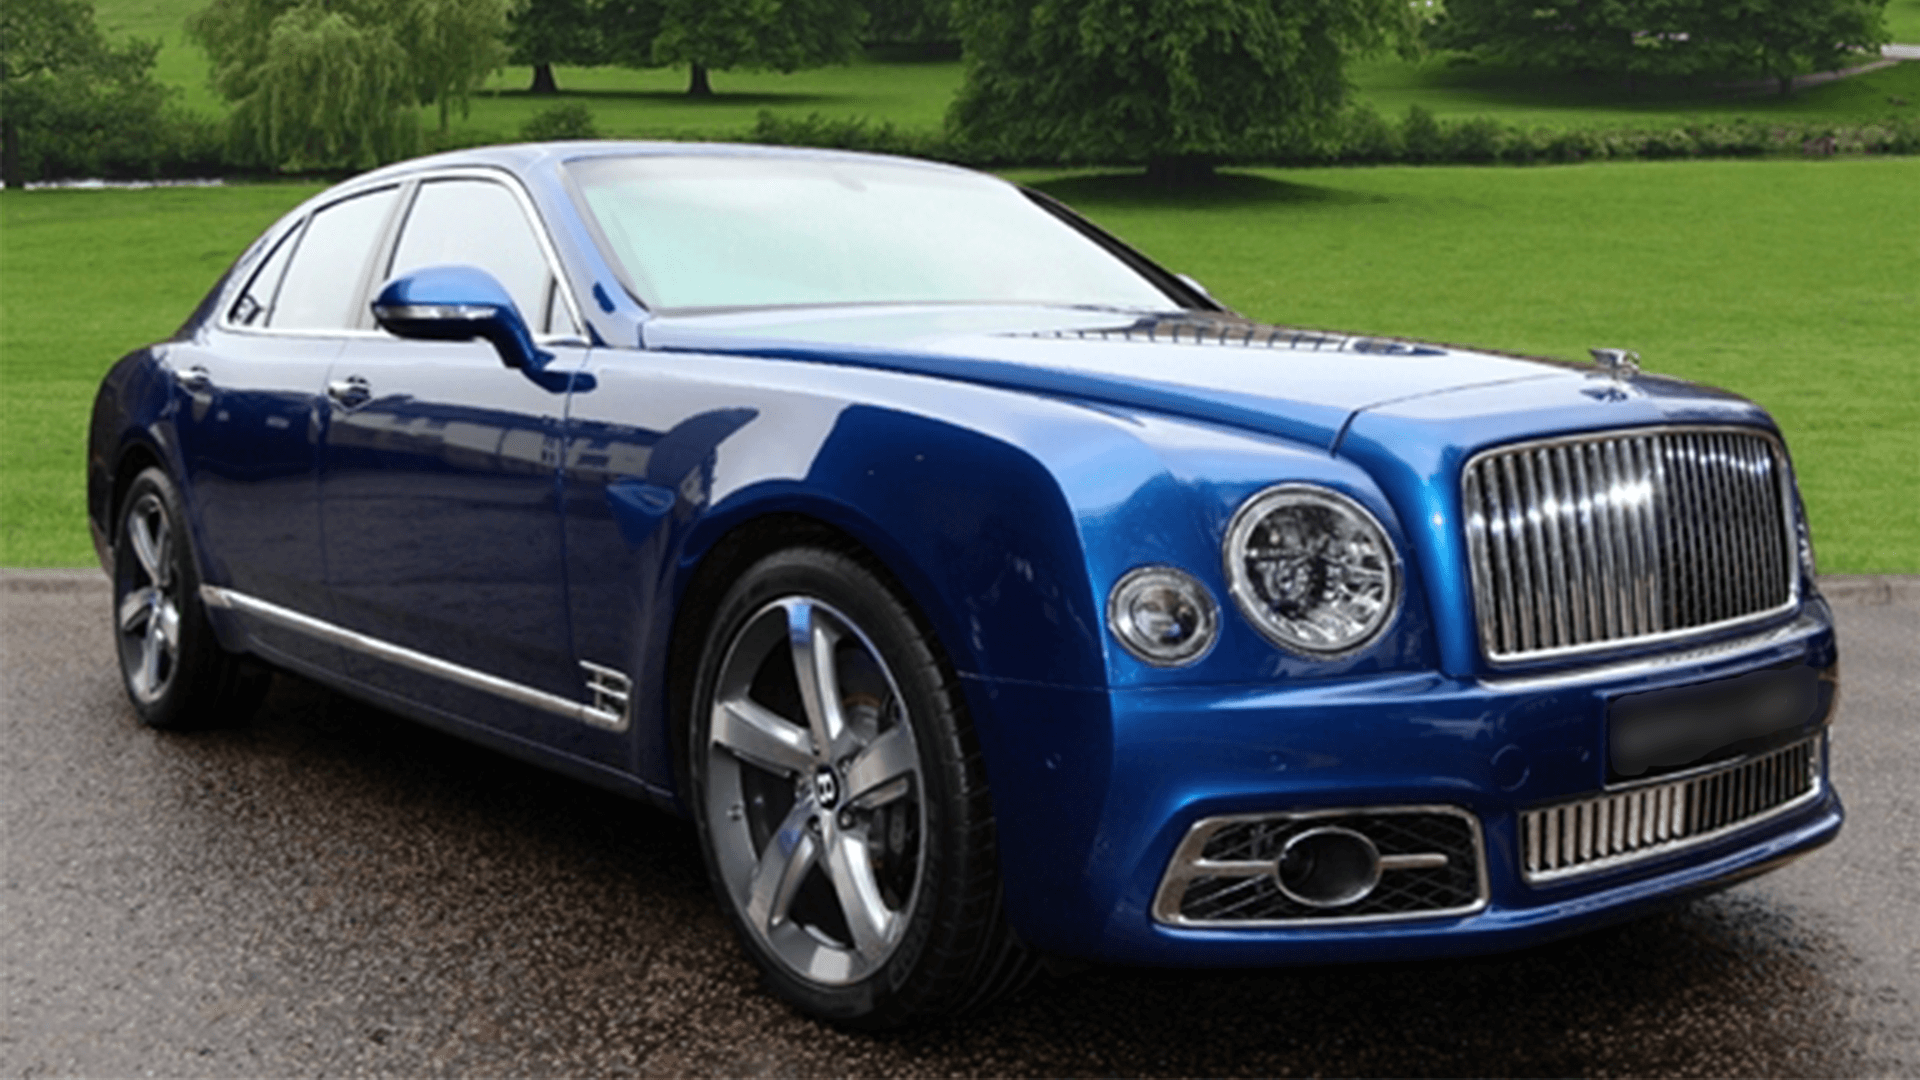 Rolls Royce For Hire >> Bentley Mulsanne Car Hire | Hire a Bentley Mulsanne